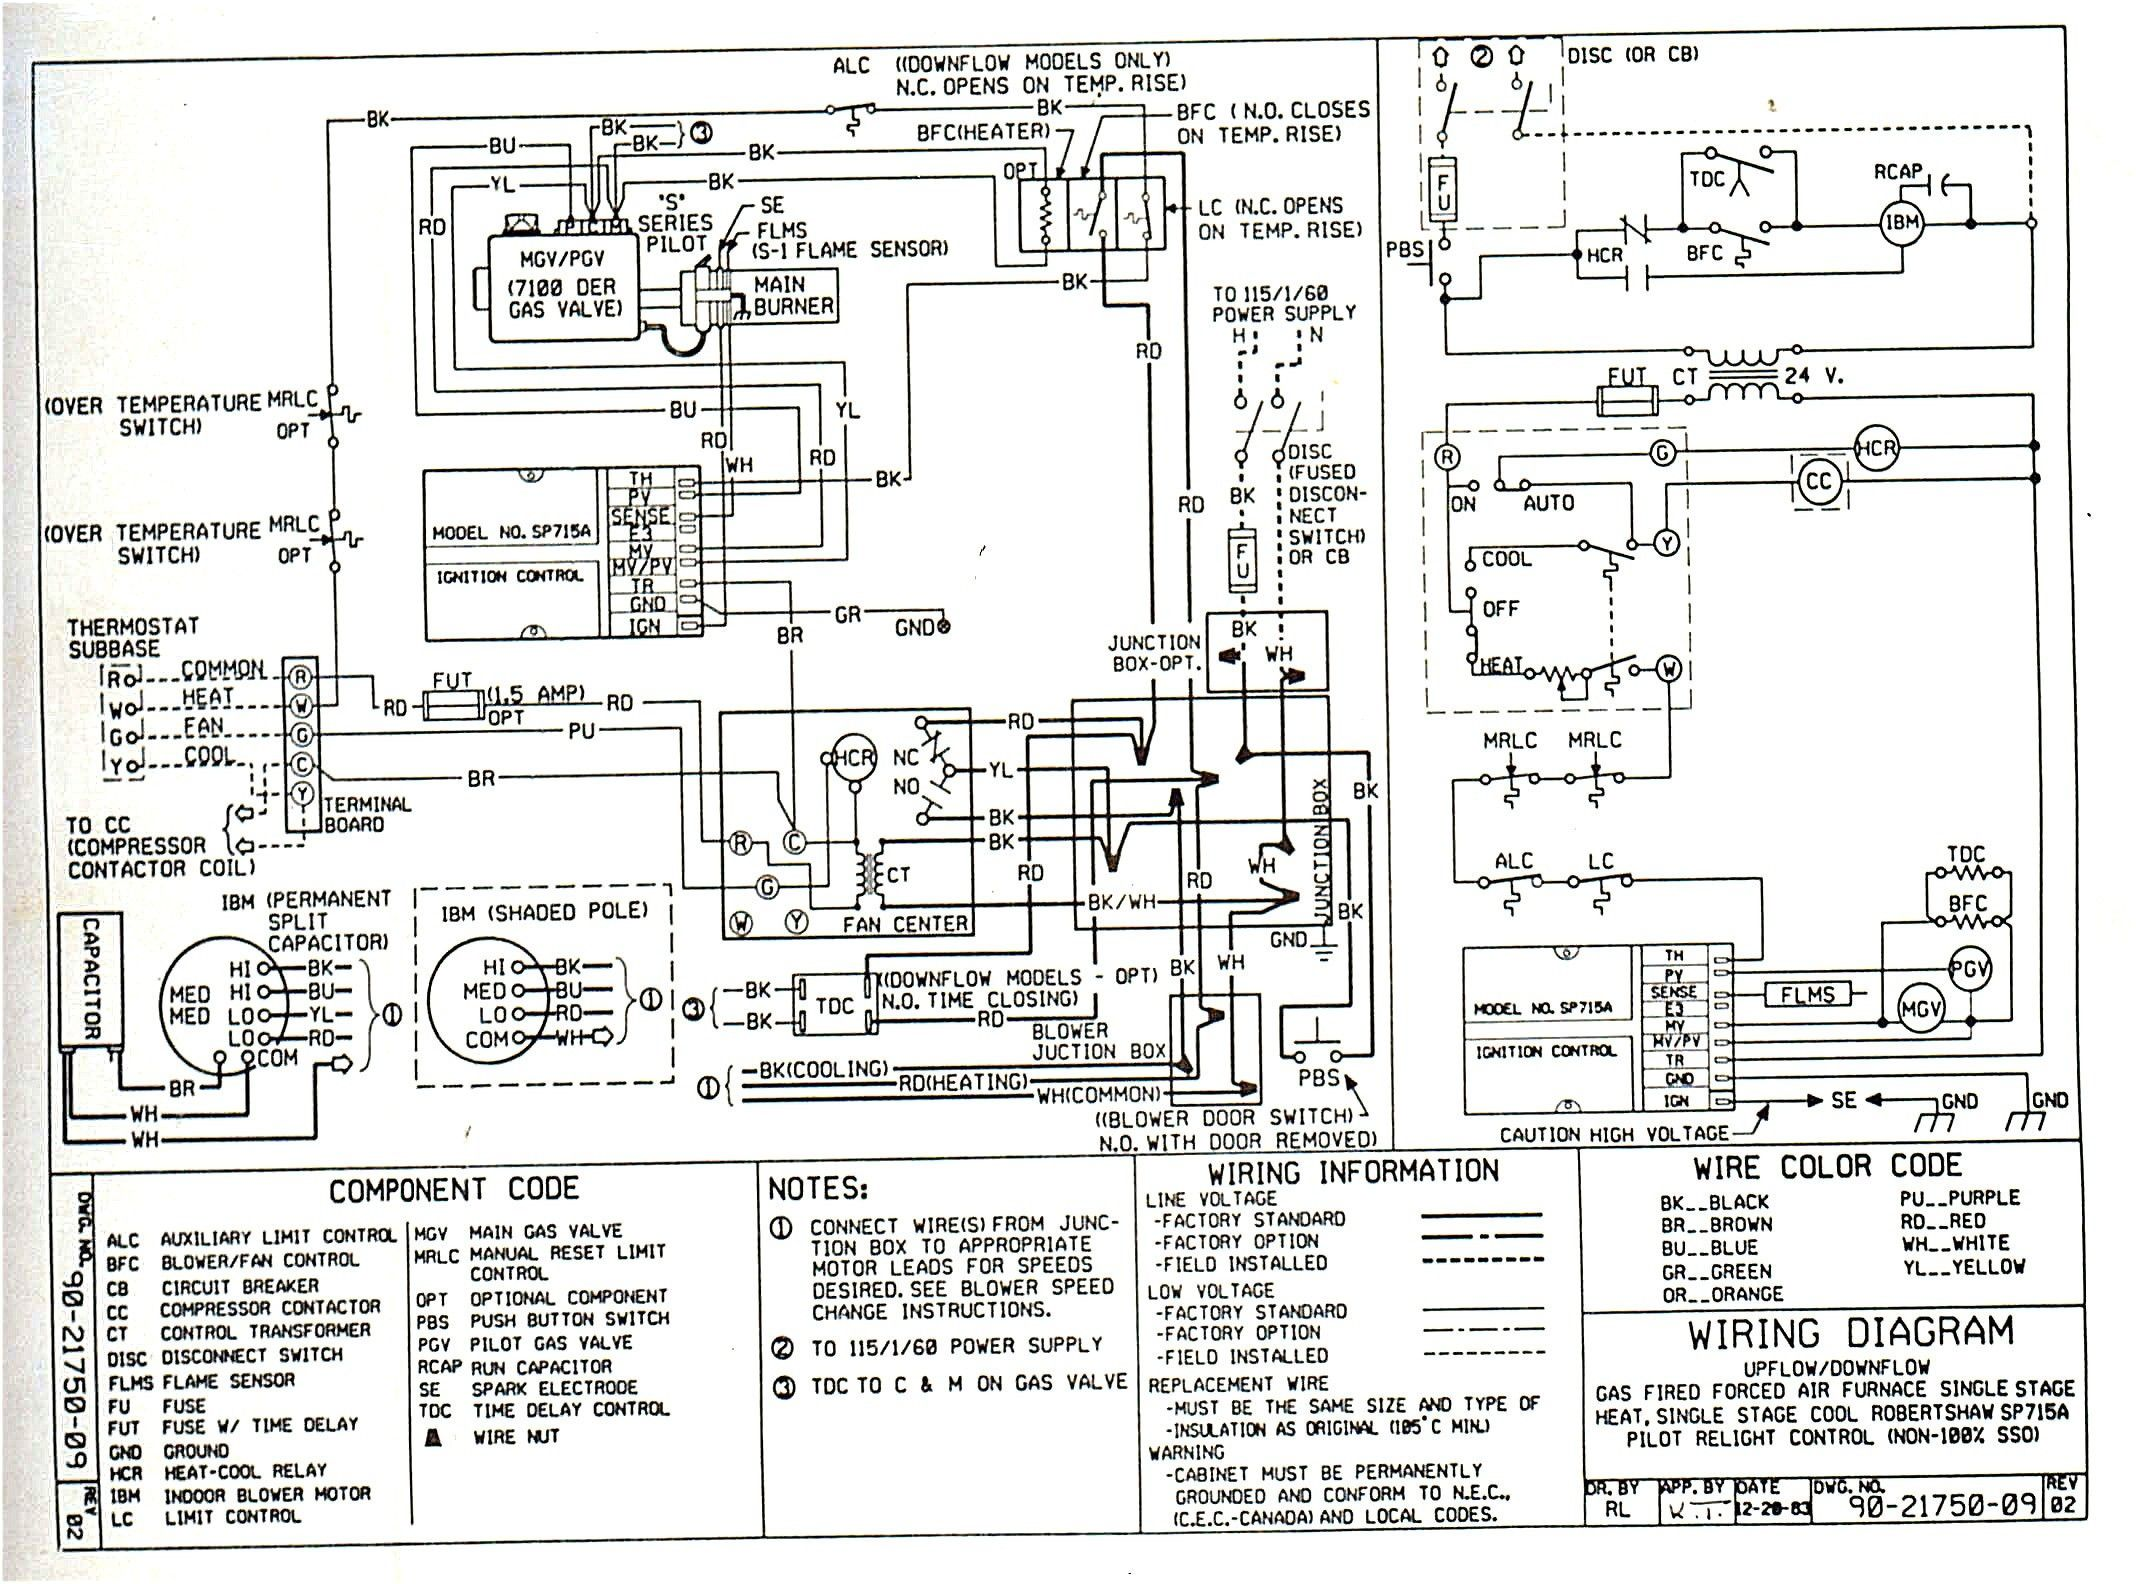 small resolution of unique wiring diagram ac panasonic diagram diagramtemplate unique wiring diagram ac panasonic diagram diagramtemplate diagramsample